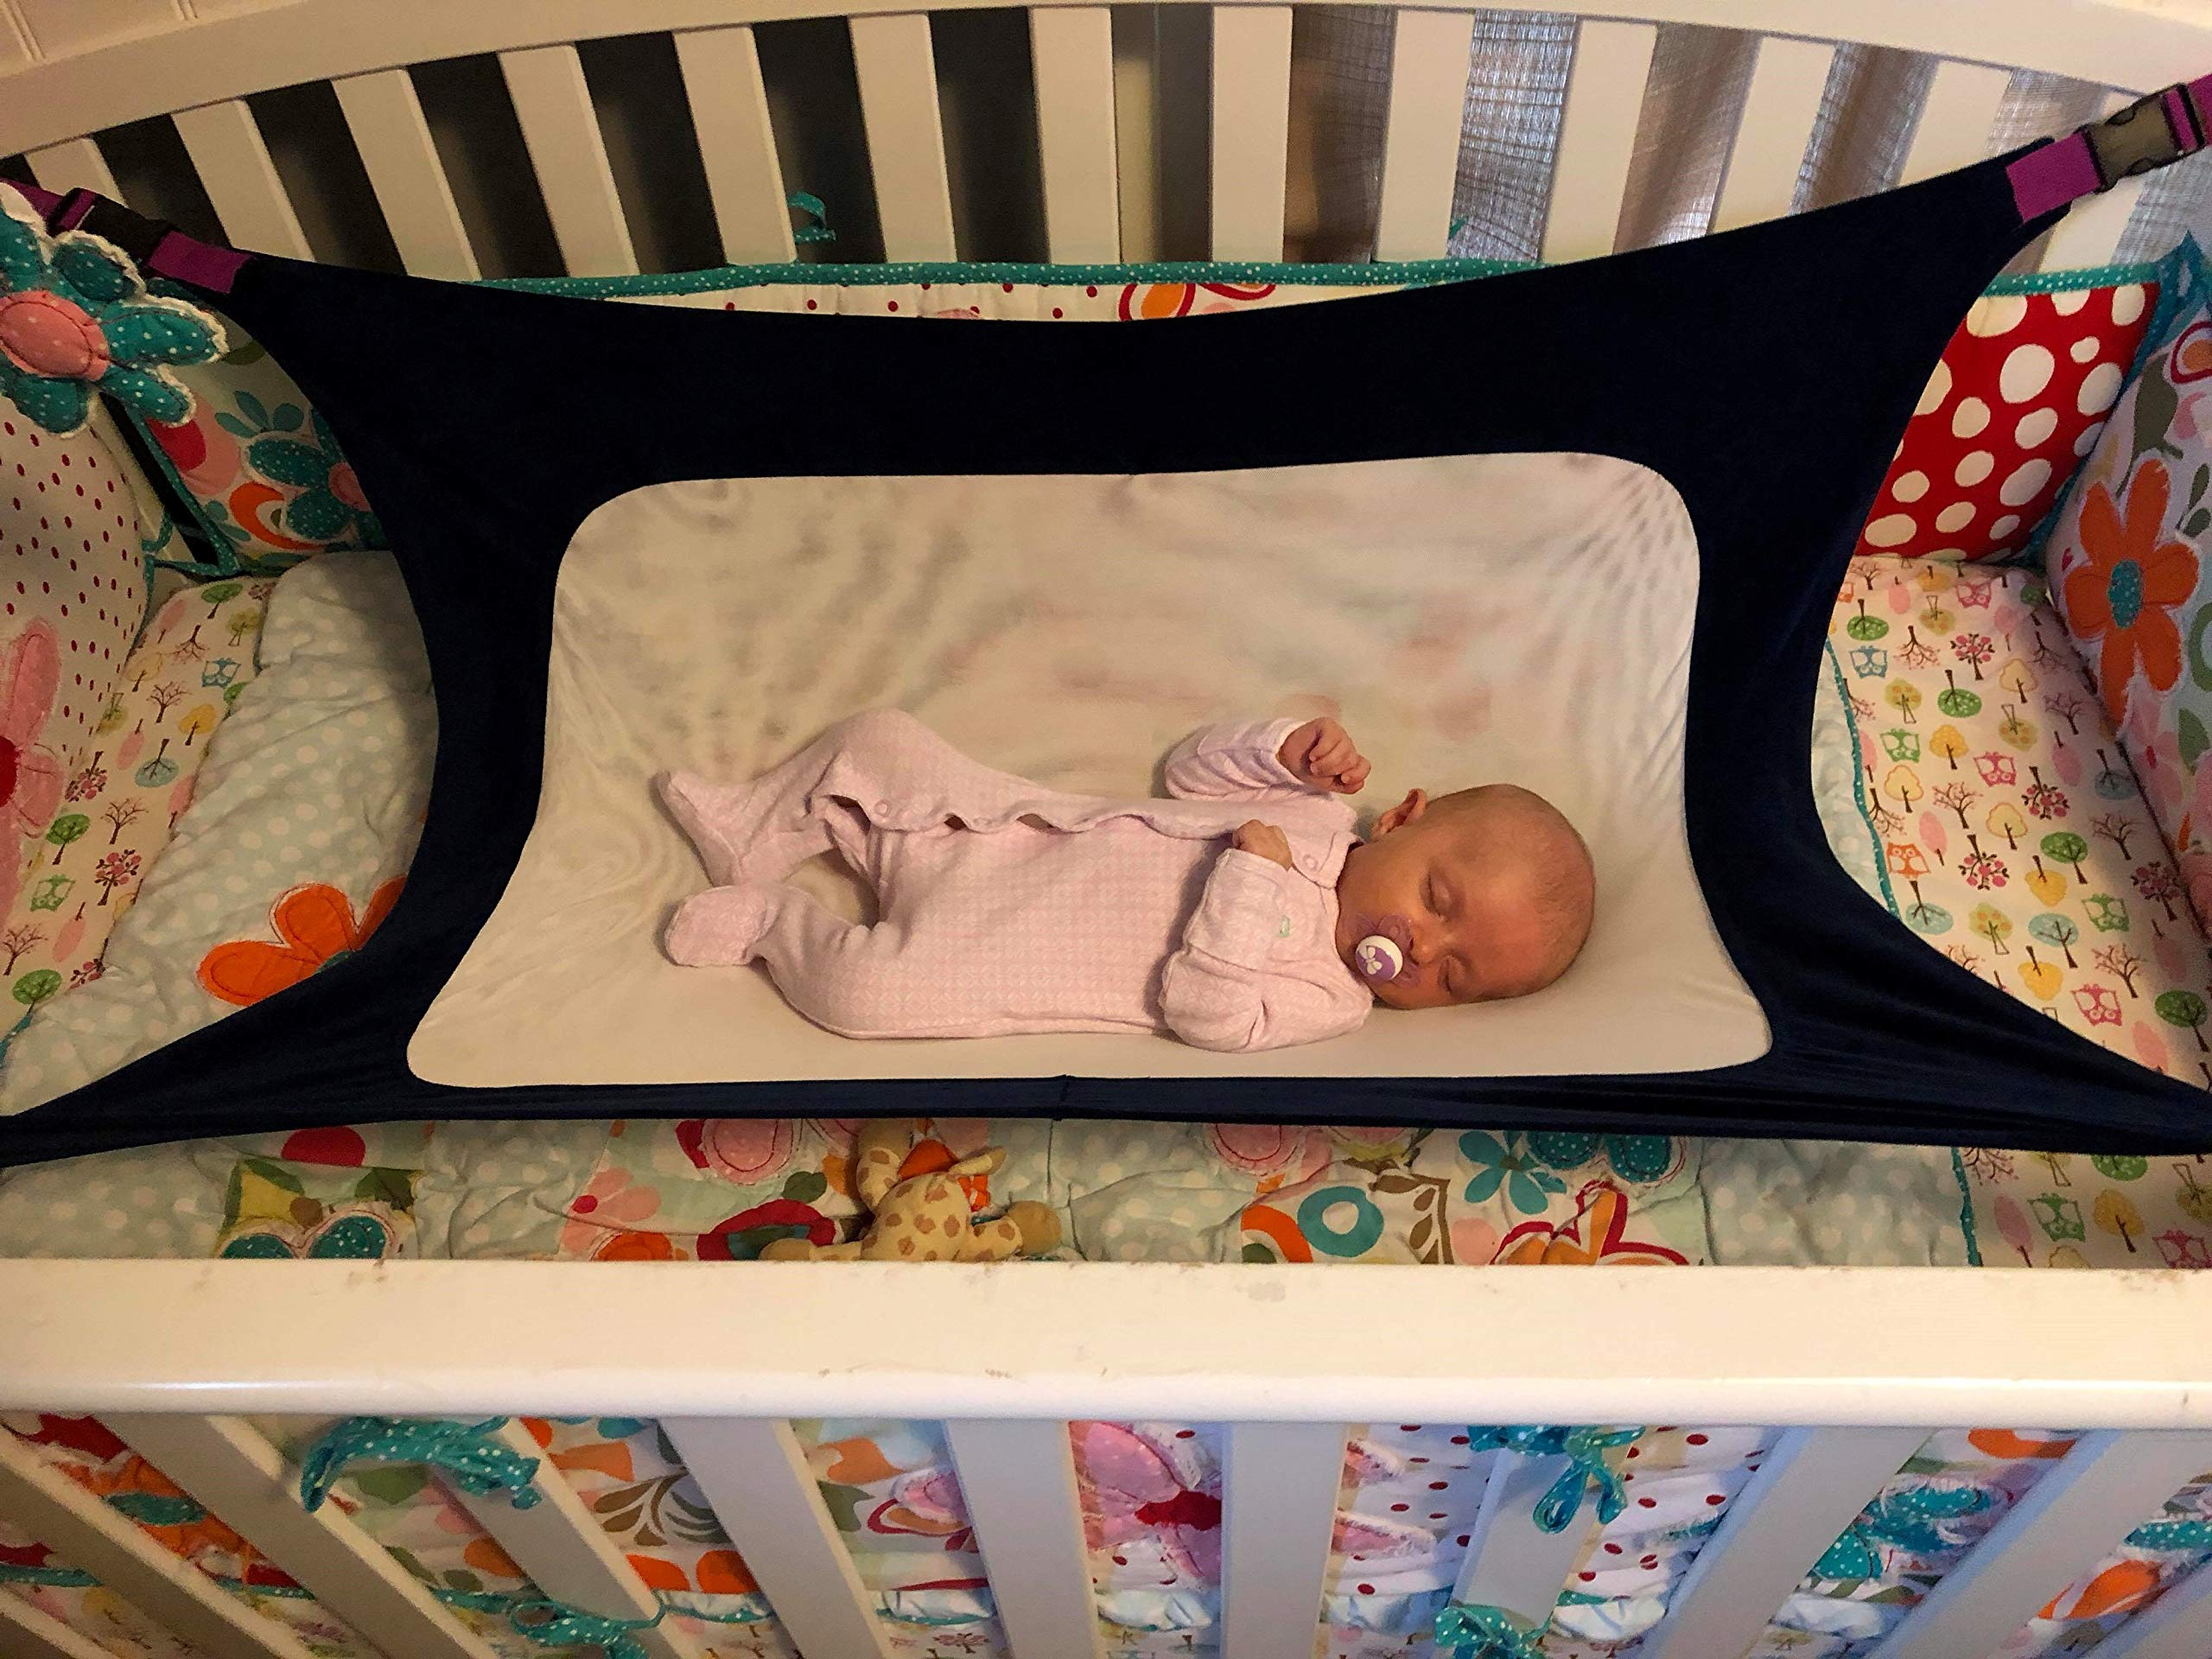 Love Truly Newborn Baby Crib Hammock, Enhanced Material, Upgraded Safety Measures, Quality Assured Infant Nursery Bed by Love Truly